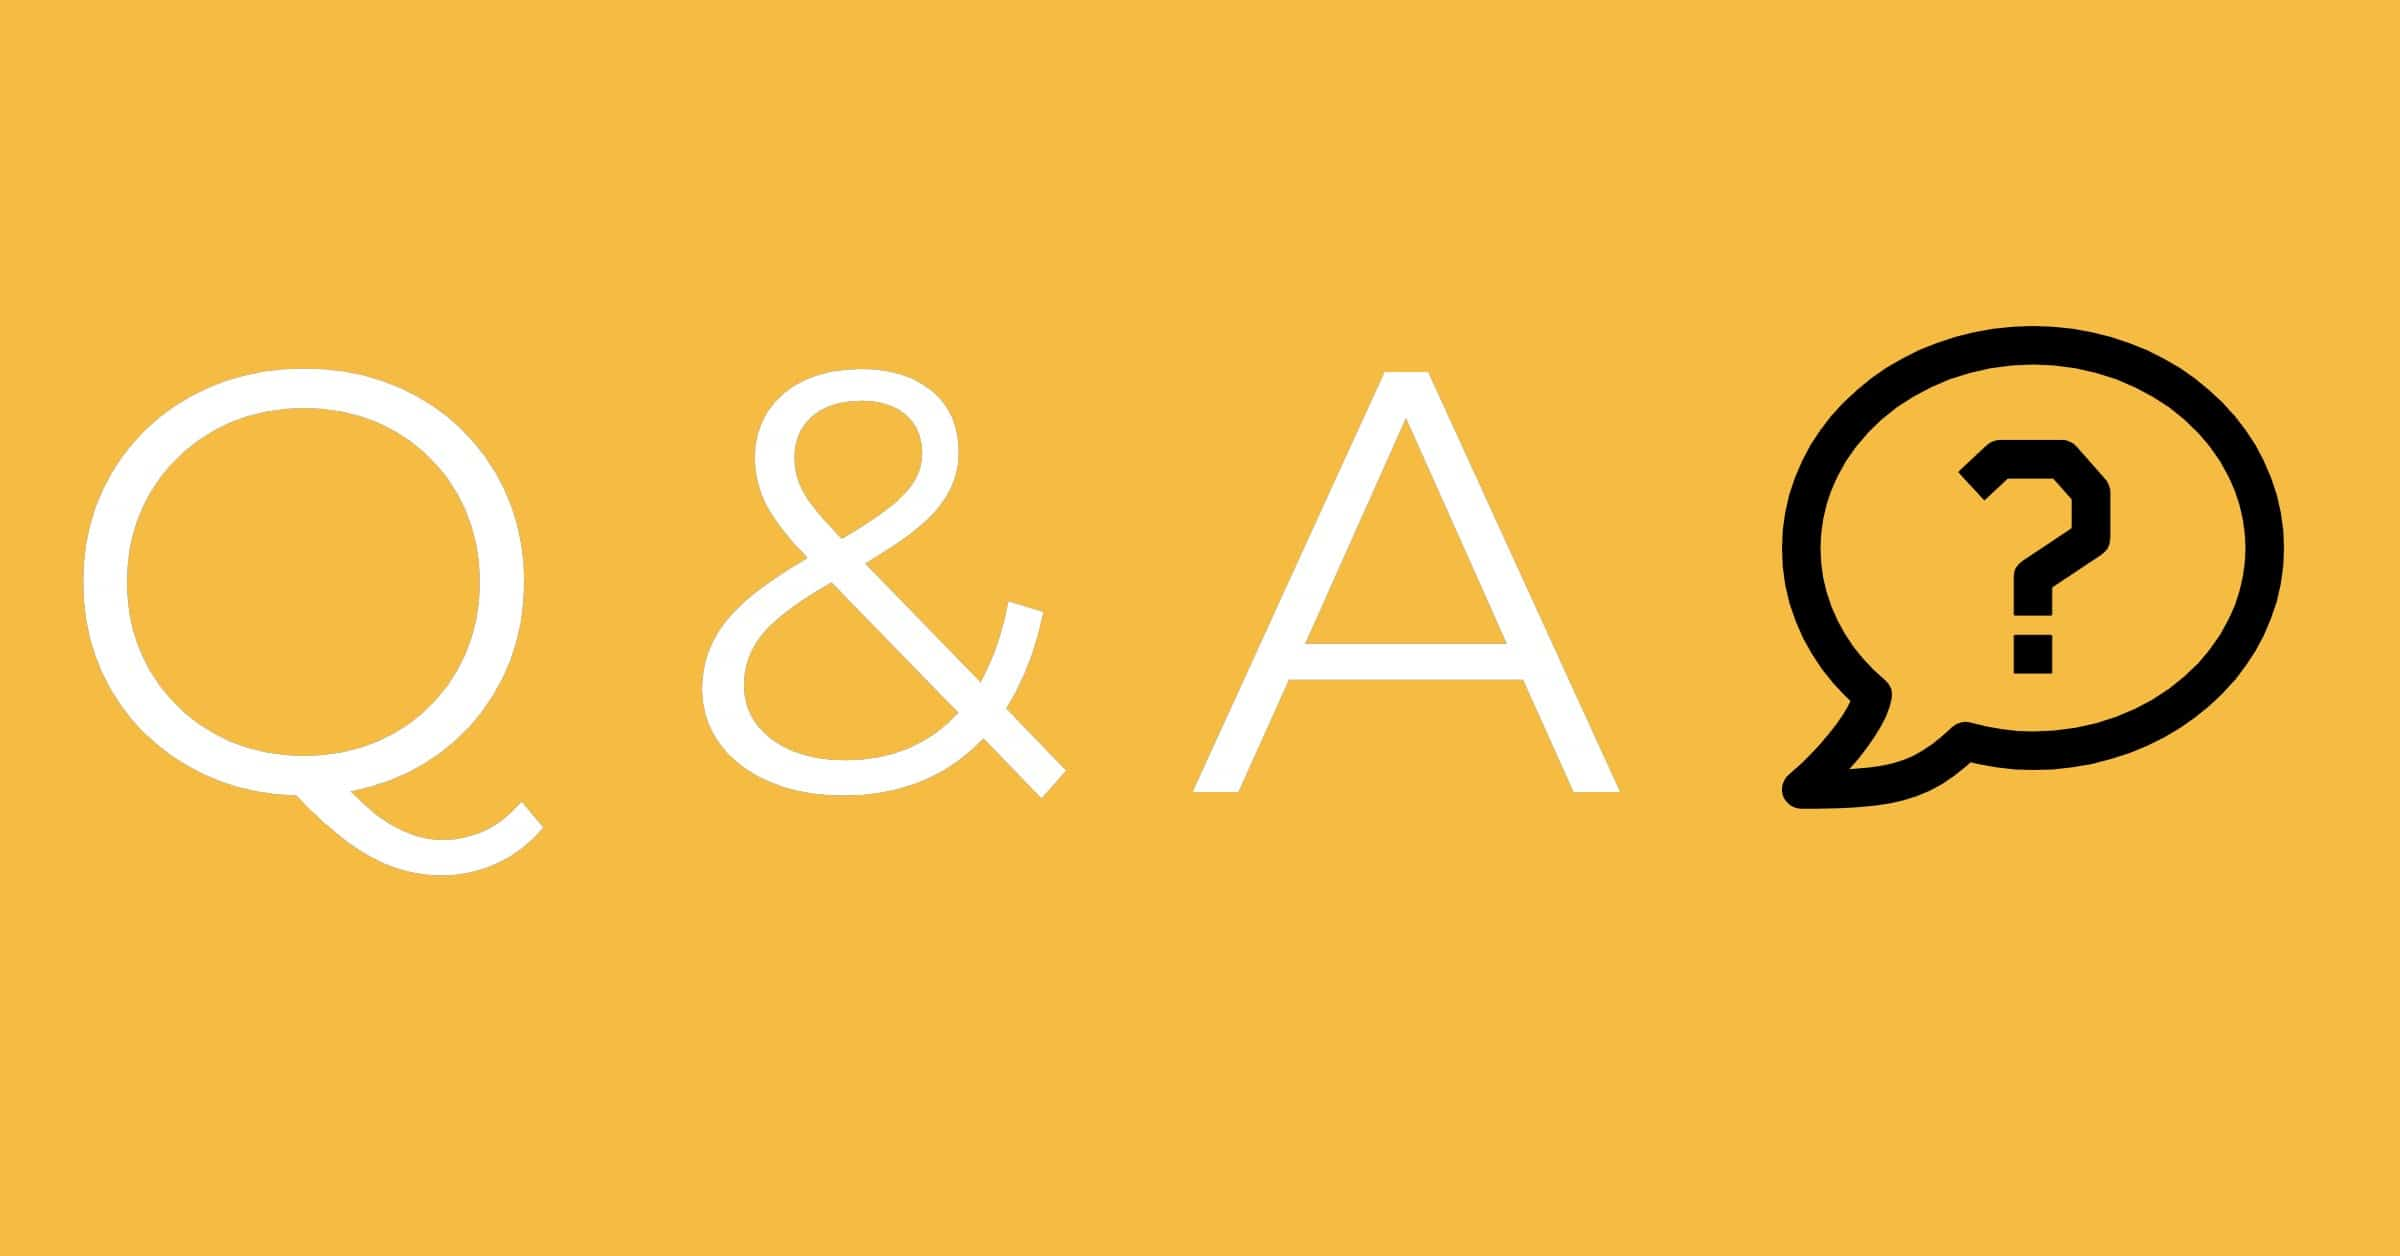 Q & A with a question market in a though bubble on a yellow background